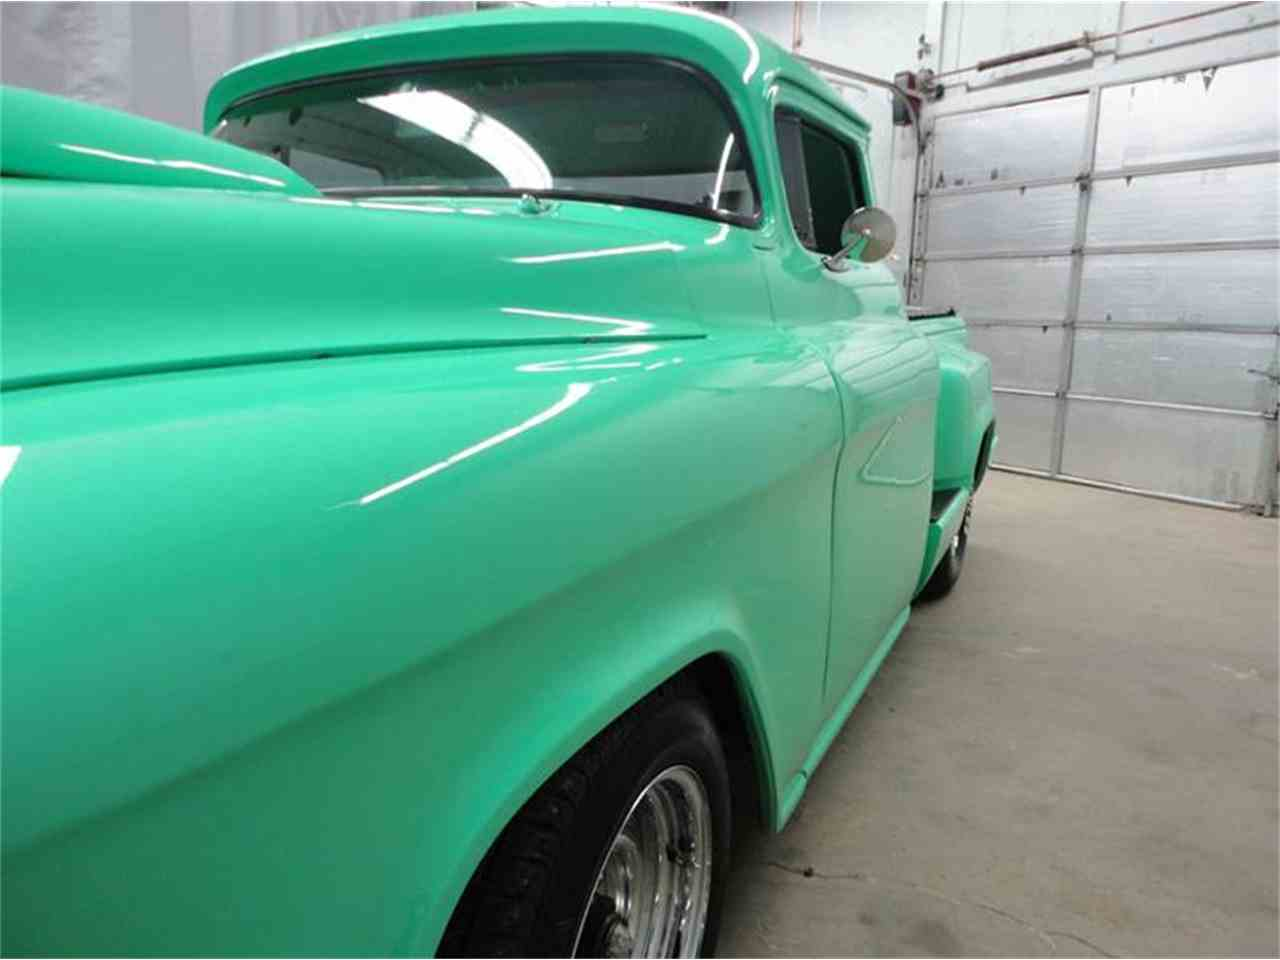 Large Picture of 1958 Chevrolet 3100 Choptop 400cid V8 located in Denver Colorado - $14,995.00 - IGSY